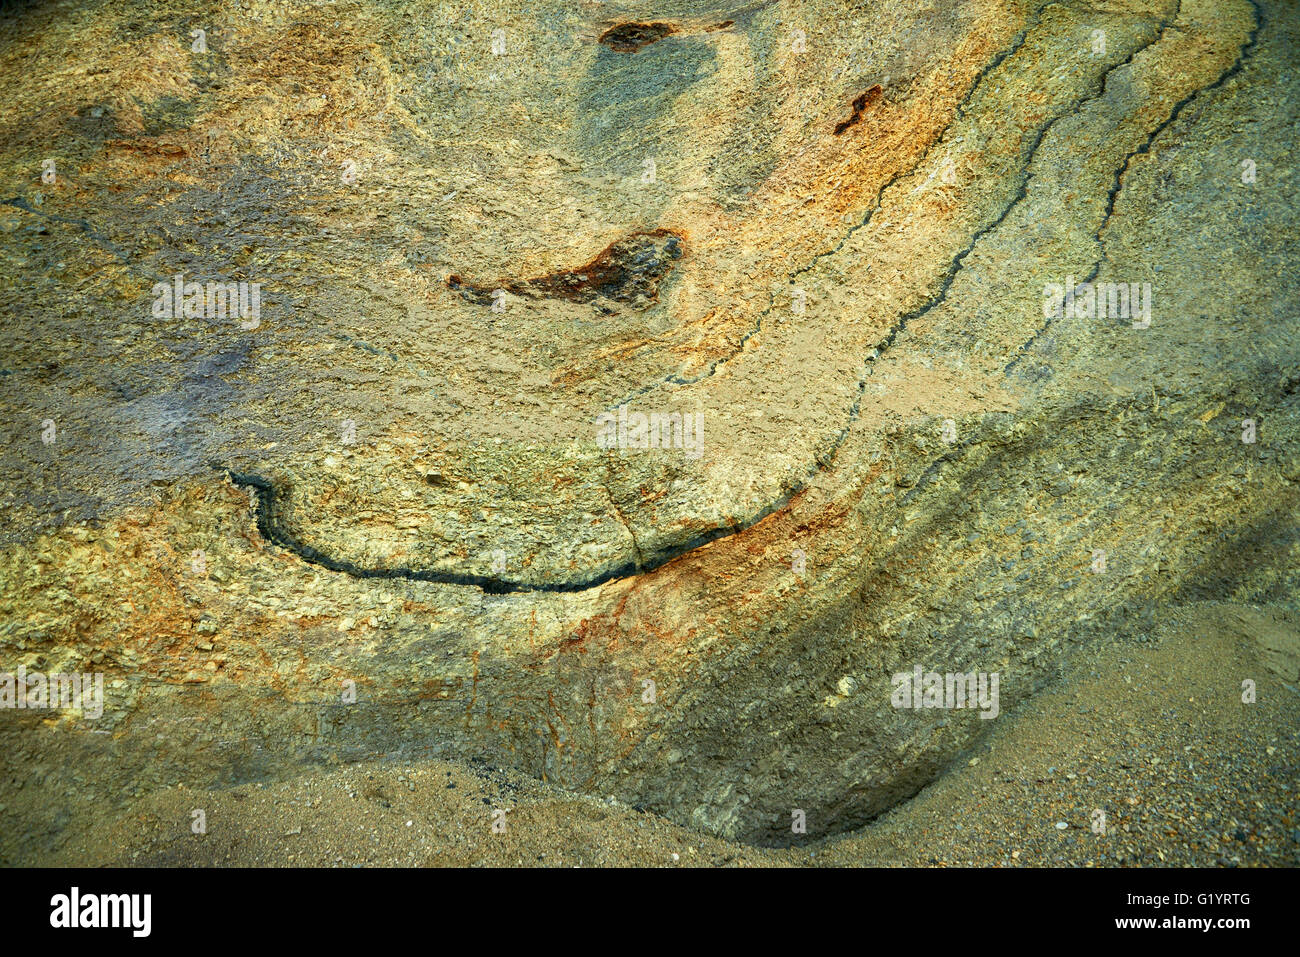 Fur formation, marine sediment made of diatoms and clay minerals, Palaeocene-Eocene, Fur Island, Denmark Stock Photo